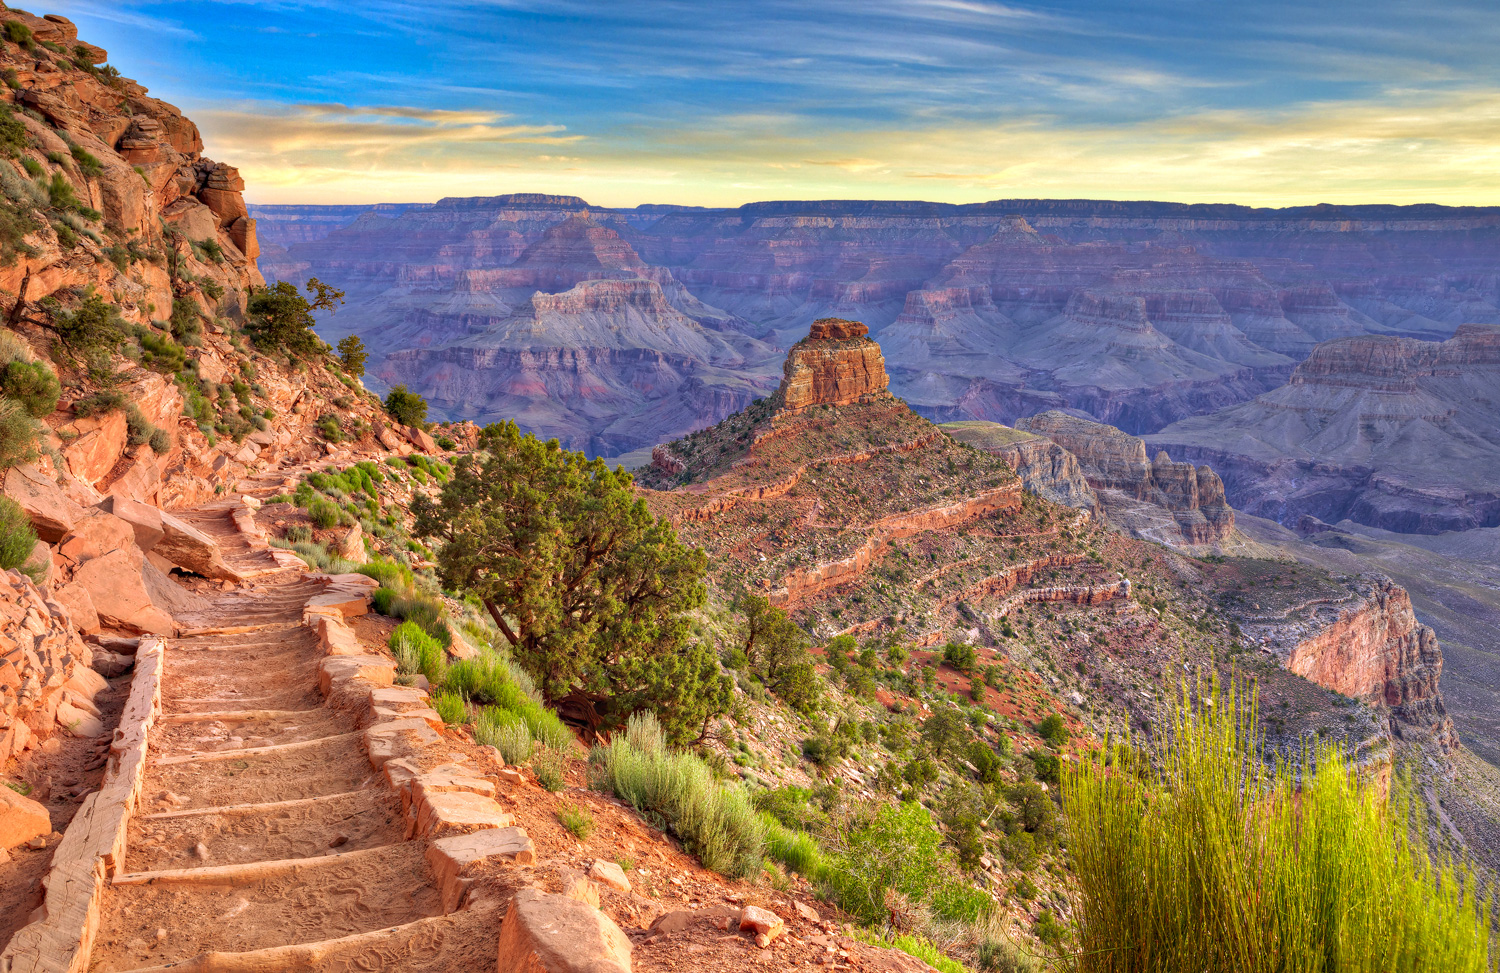 South Kaibab Trail at sunrise, in Grand Canyon